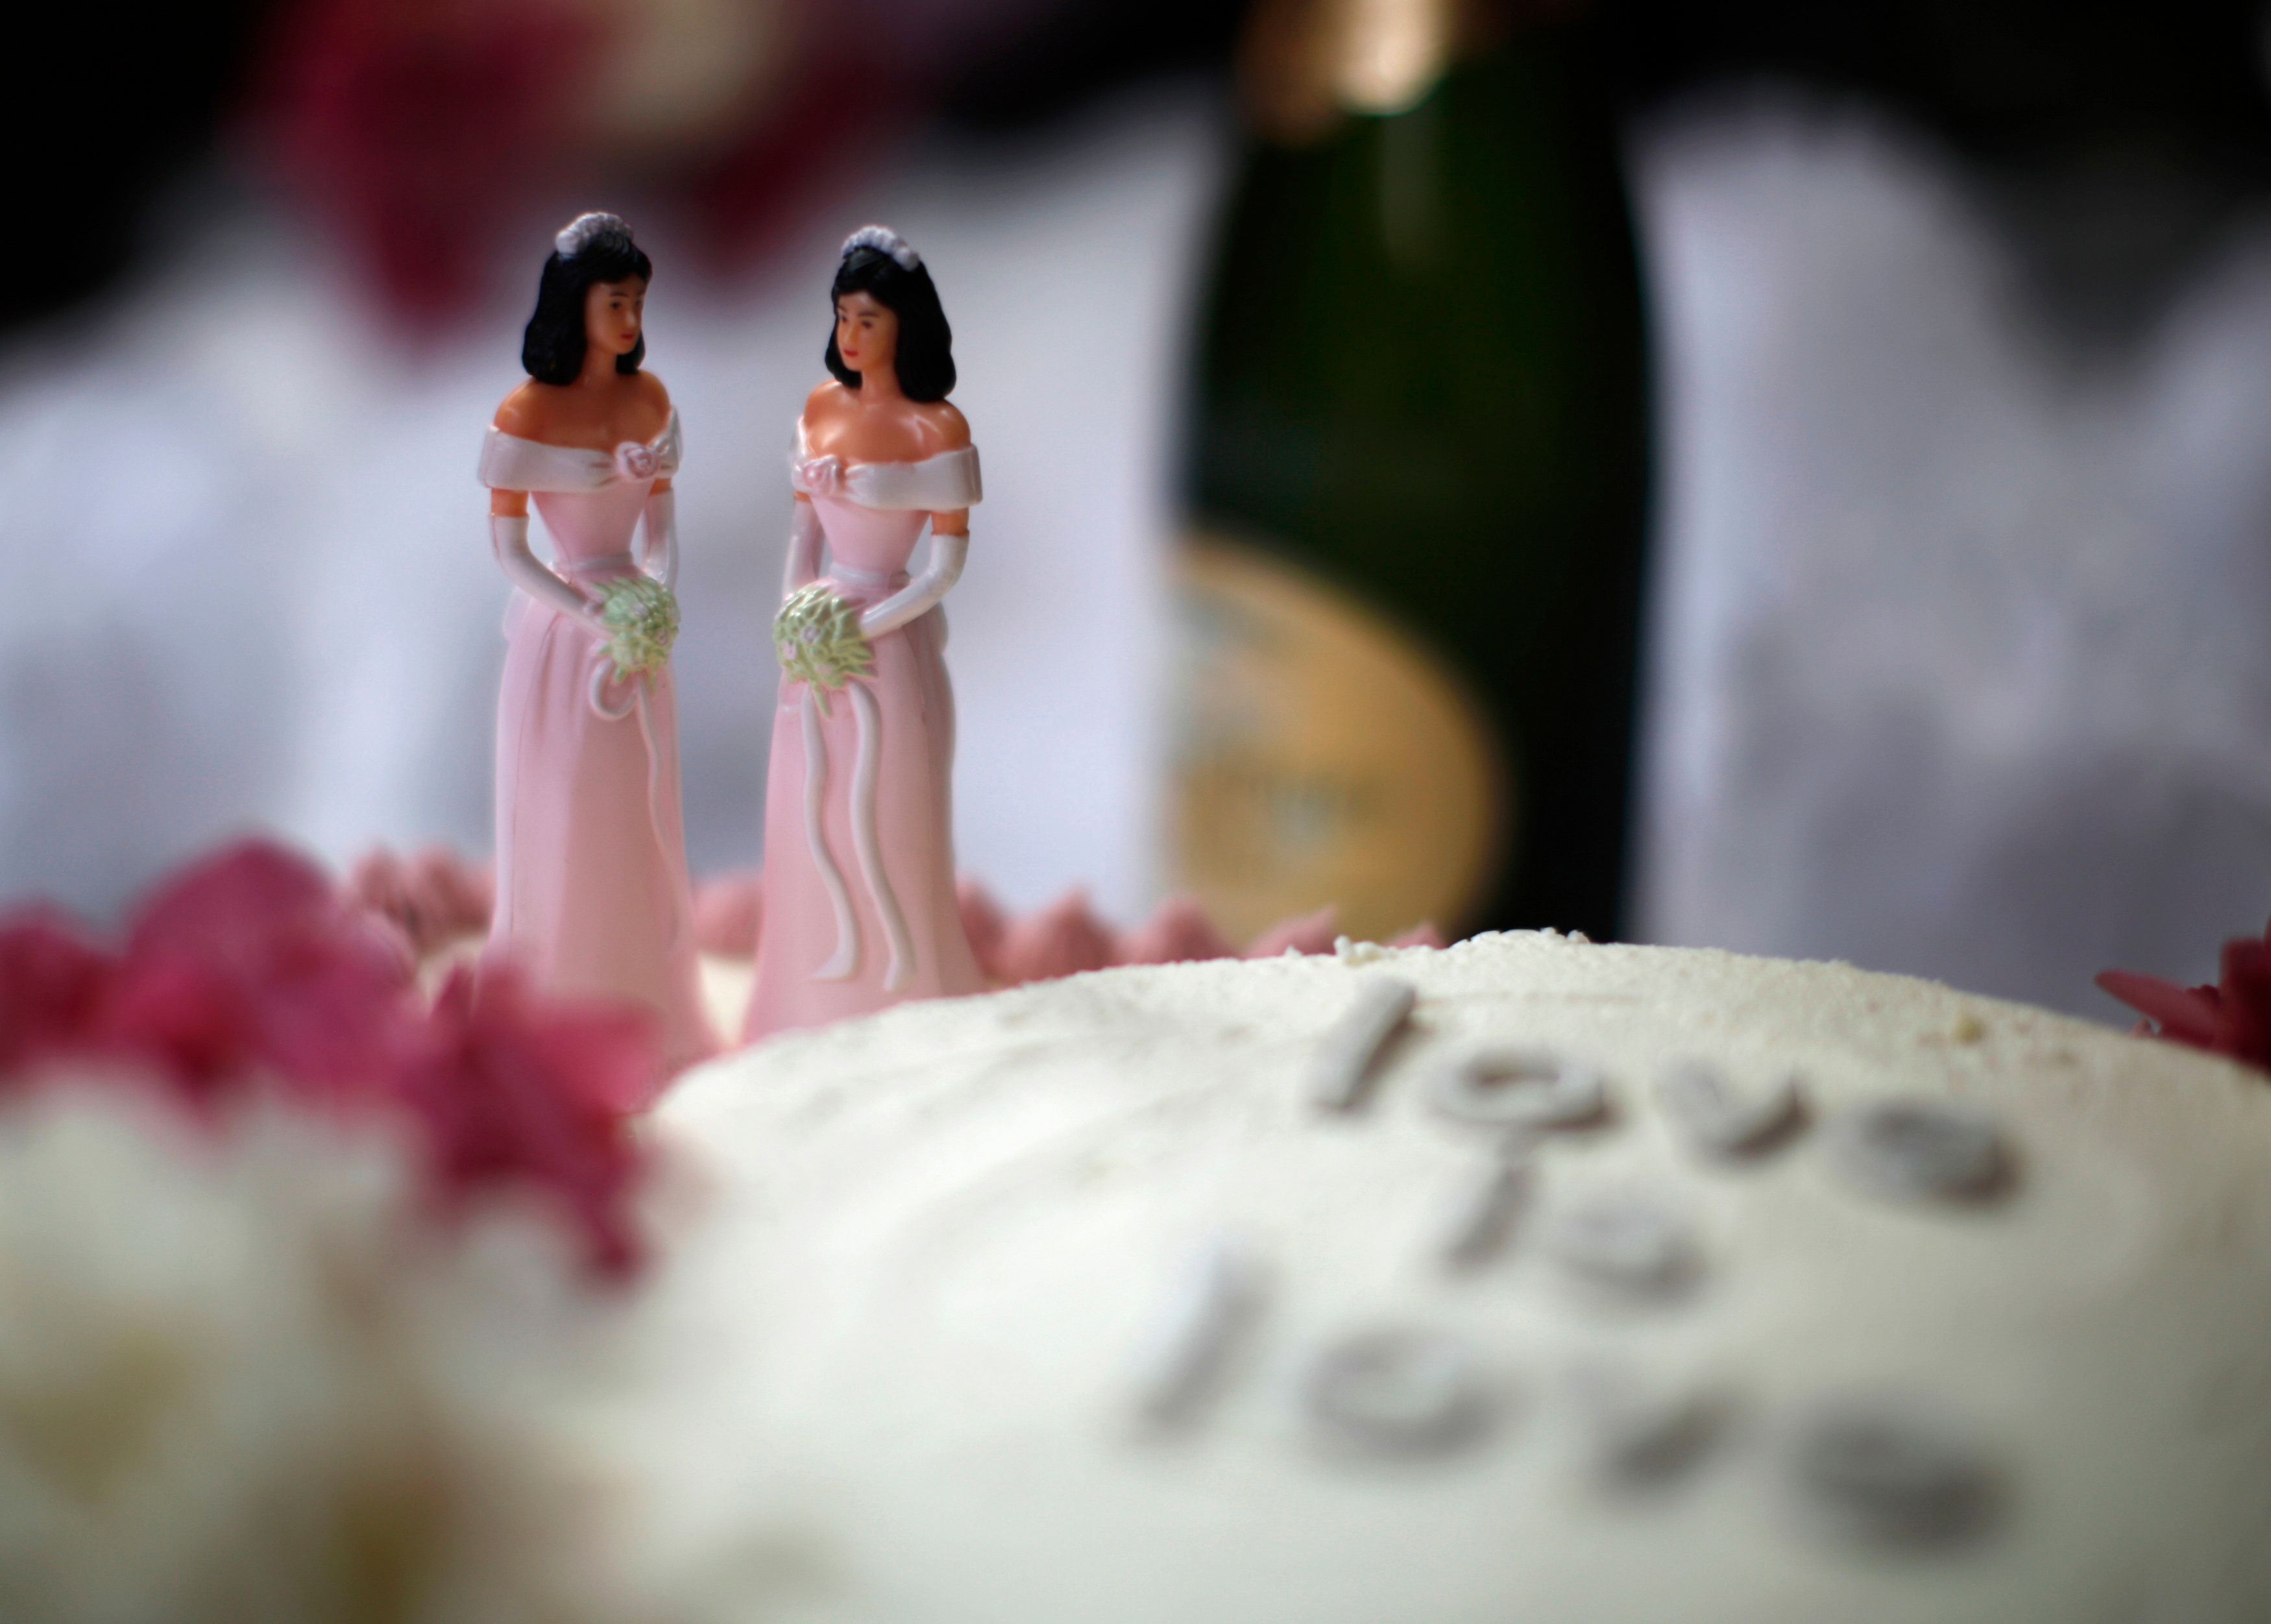 A wedding cake is seen at a reception for same-sex couples at The Abbey in West Hollywood, California, July 1, 2013. REUTERS/Lucy Nicholson (UNITED STATES - Tags: POLITICS FOOD SOCIETY)